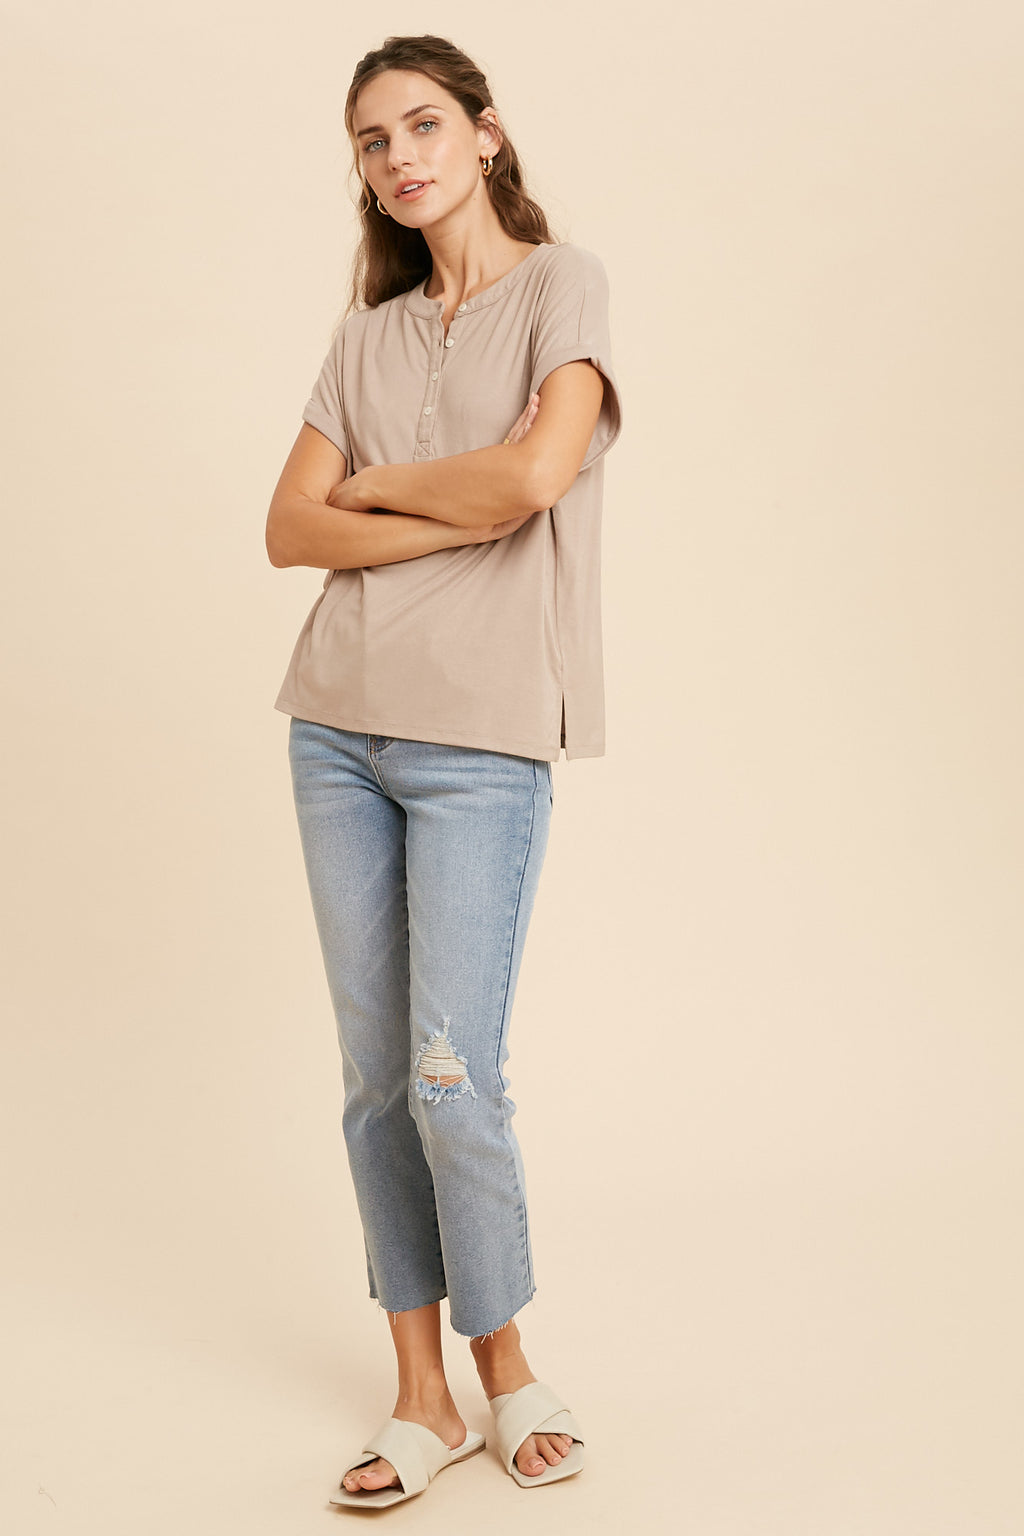 Sam Relaxed Knit Henley Tee - Mocha